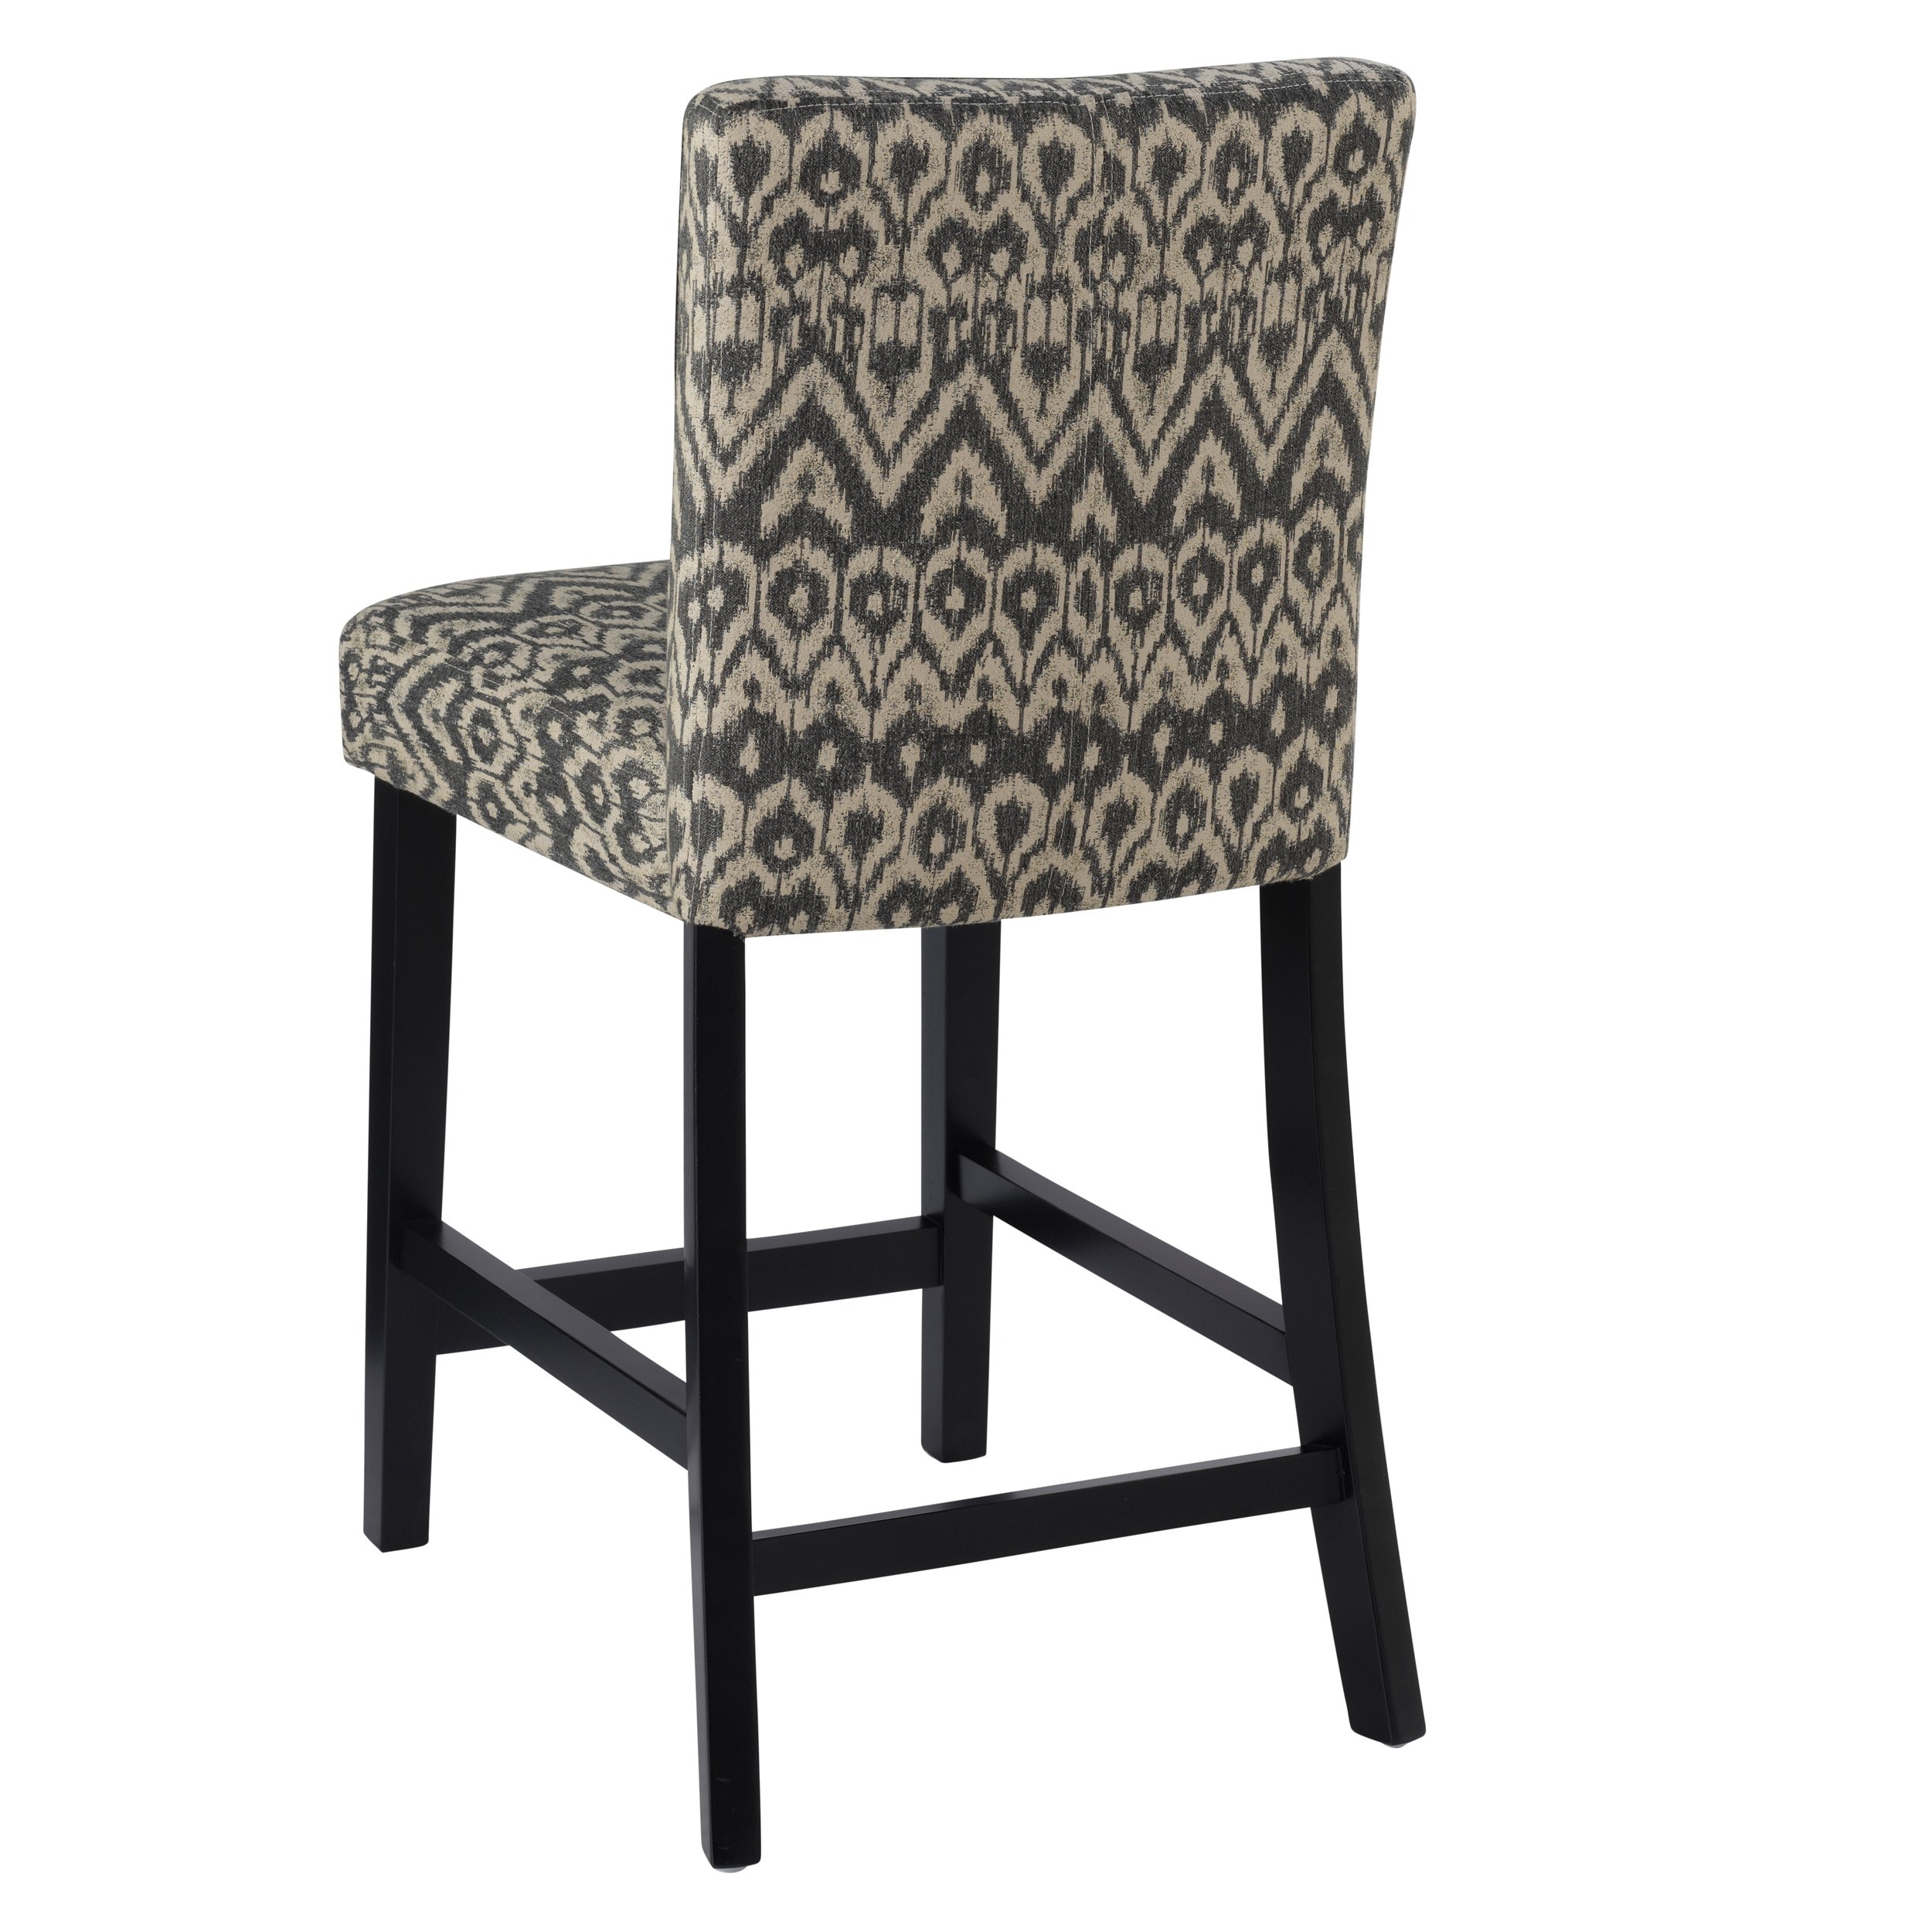 Shop linon marrakesh counter height stool driftwood free shipping today overstock com 9273265